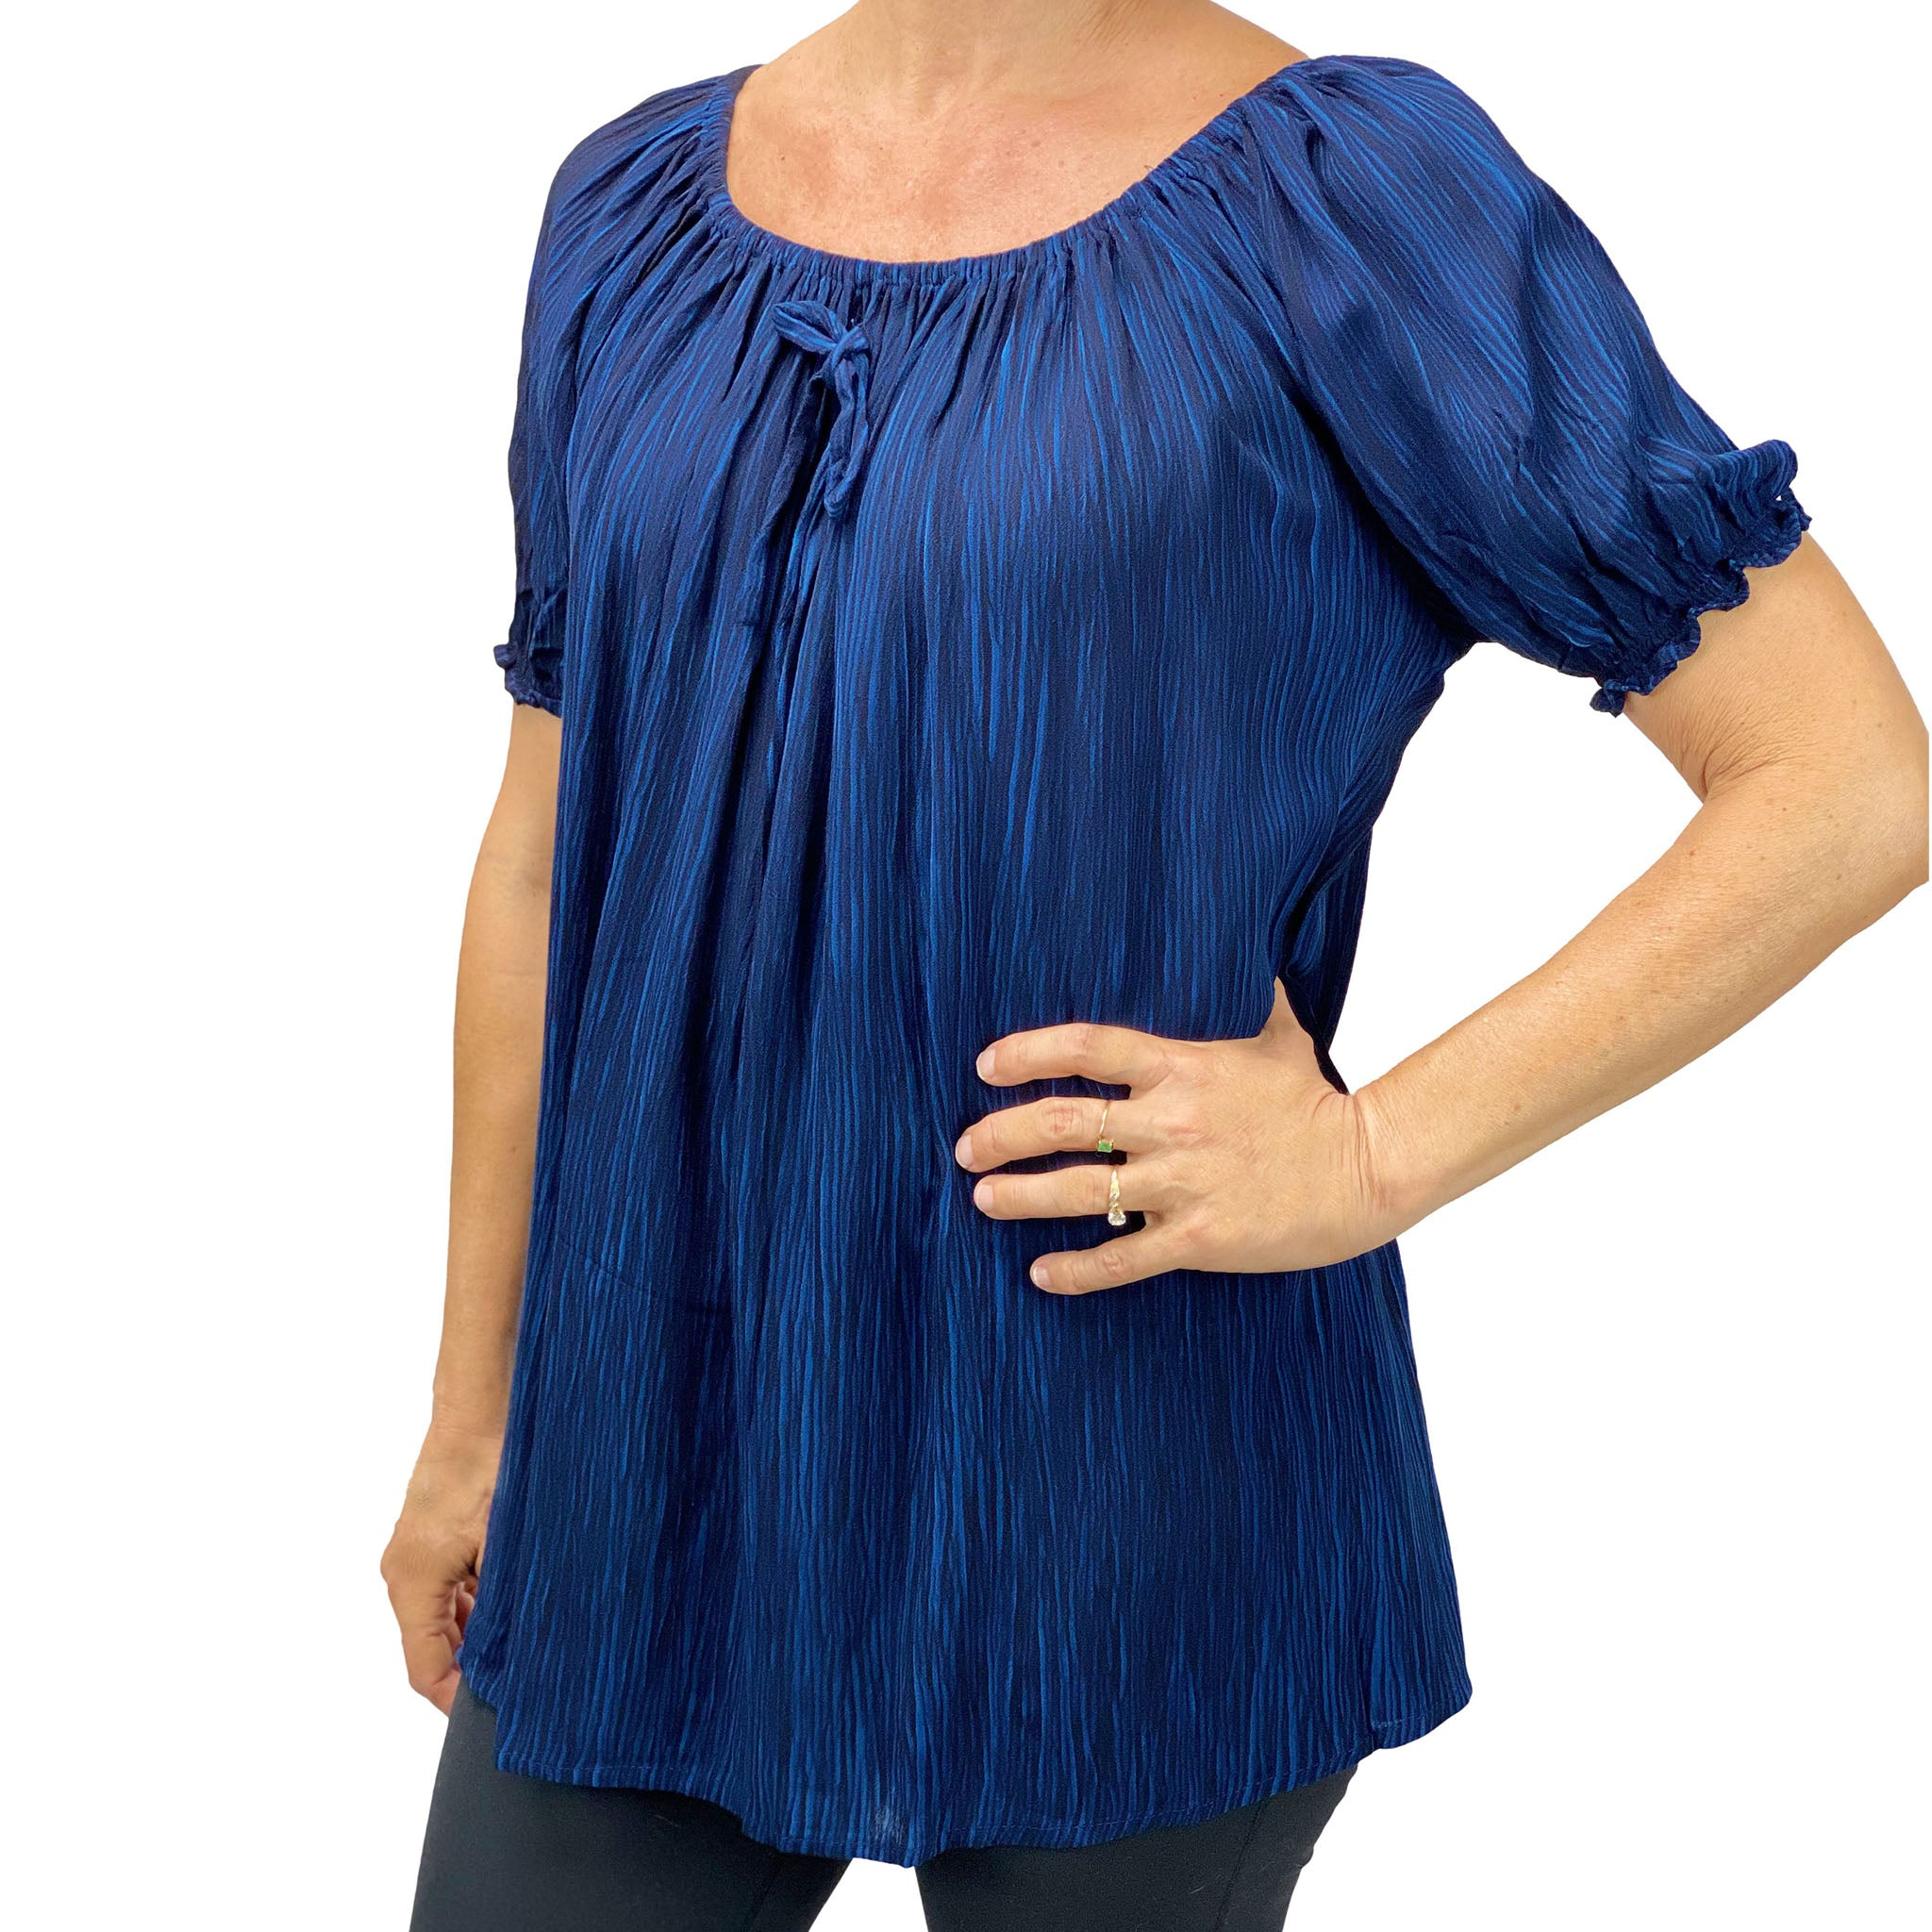 Womans renaissance top pirate blouse Navy